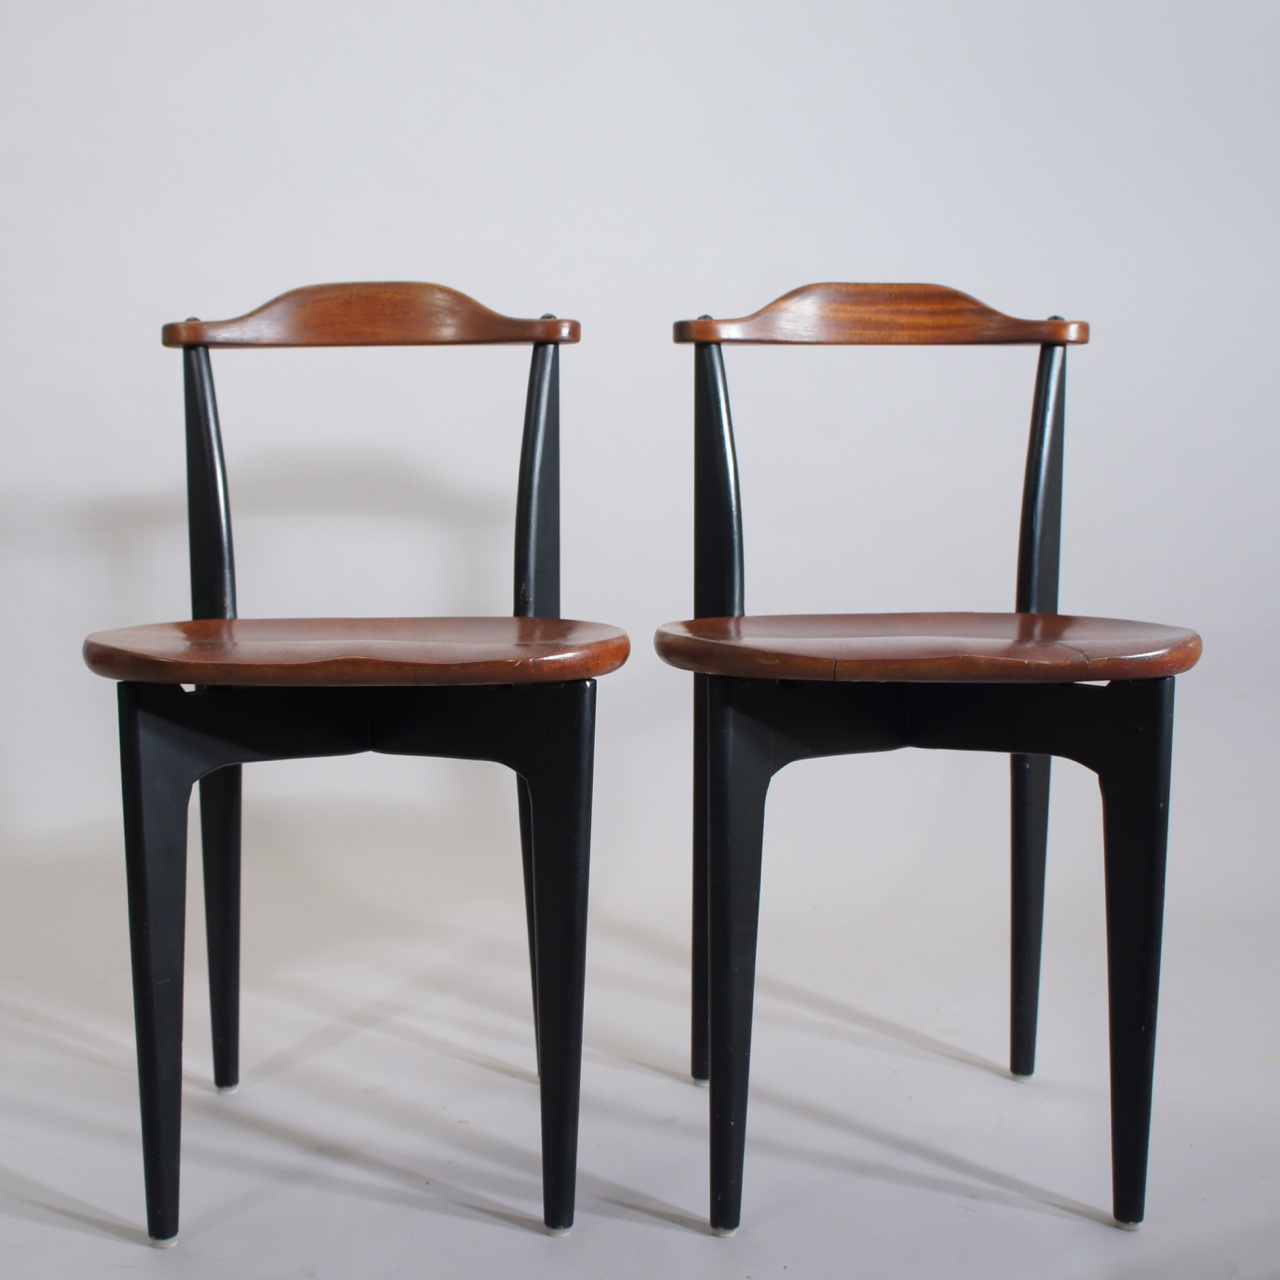 Attirant Two Chairs By Yngve Ekström U201cThemau201d U2013 Sold.